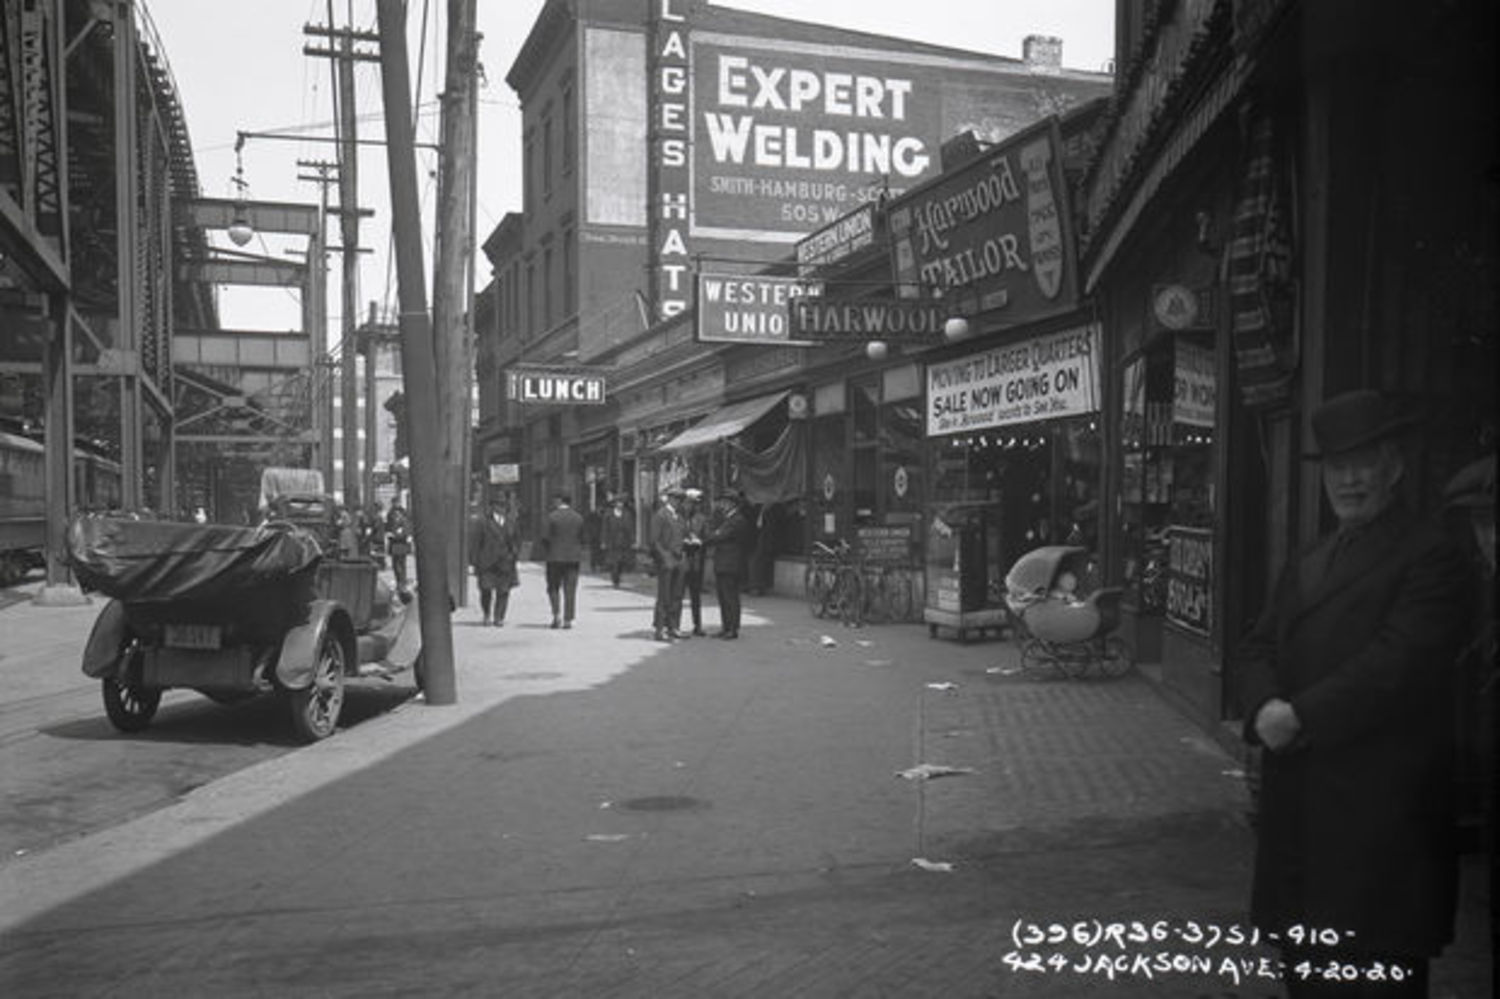 Jackson Avenue near Queensboro Plaza in 1920. The elevated 7 tracks can be seen to the left.